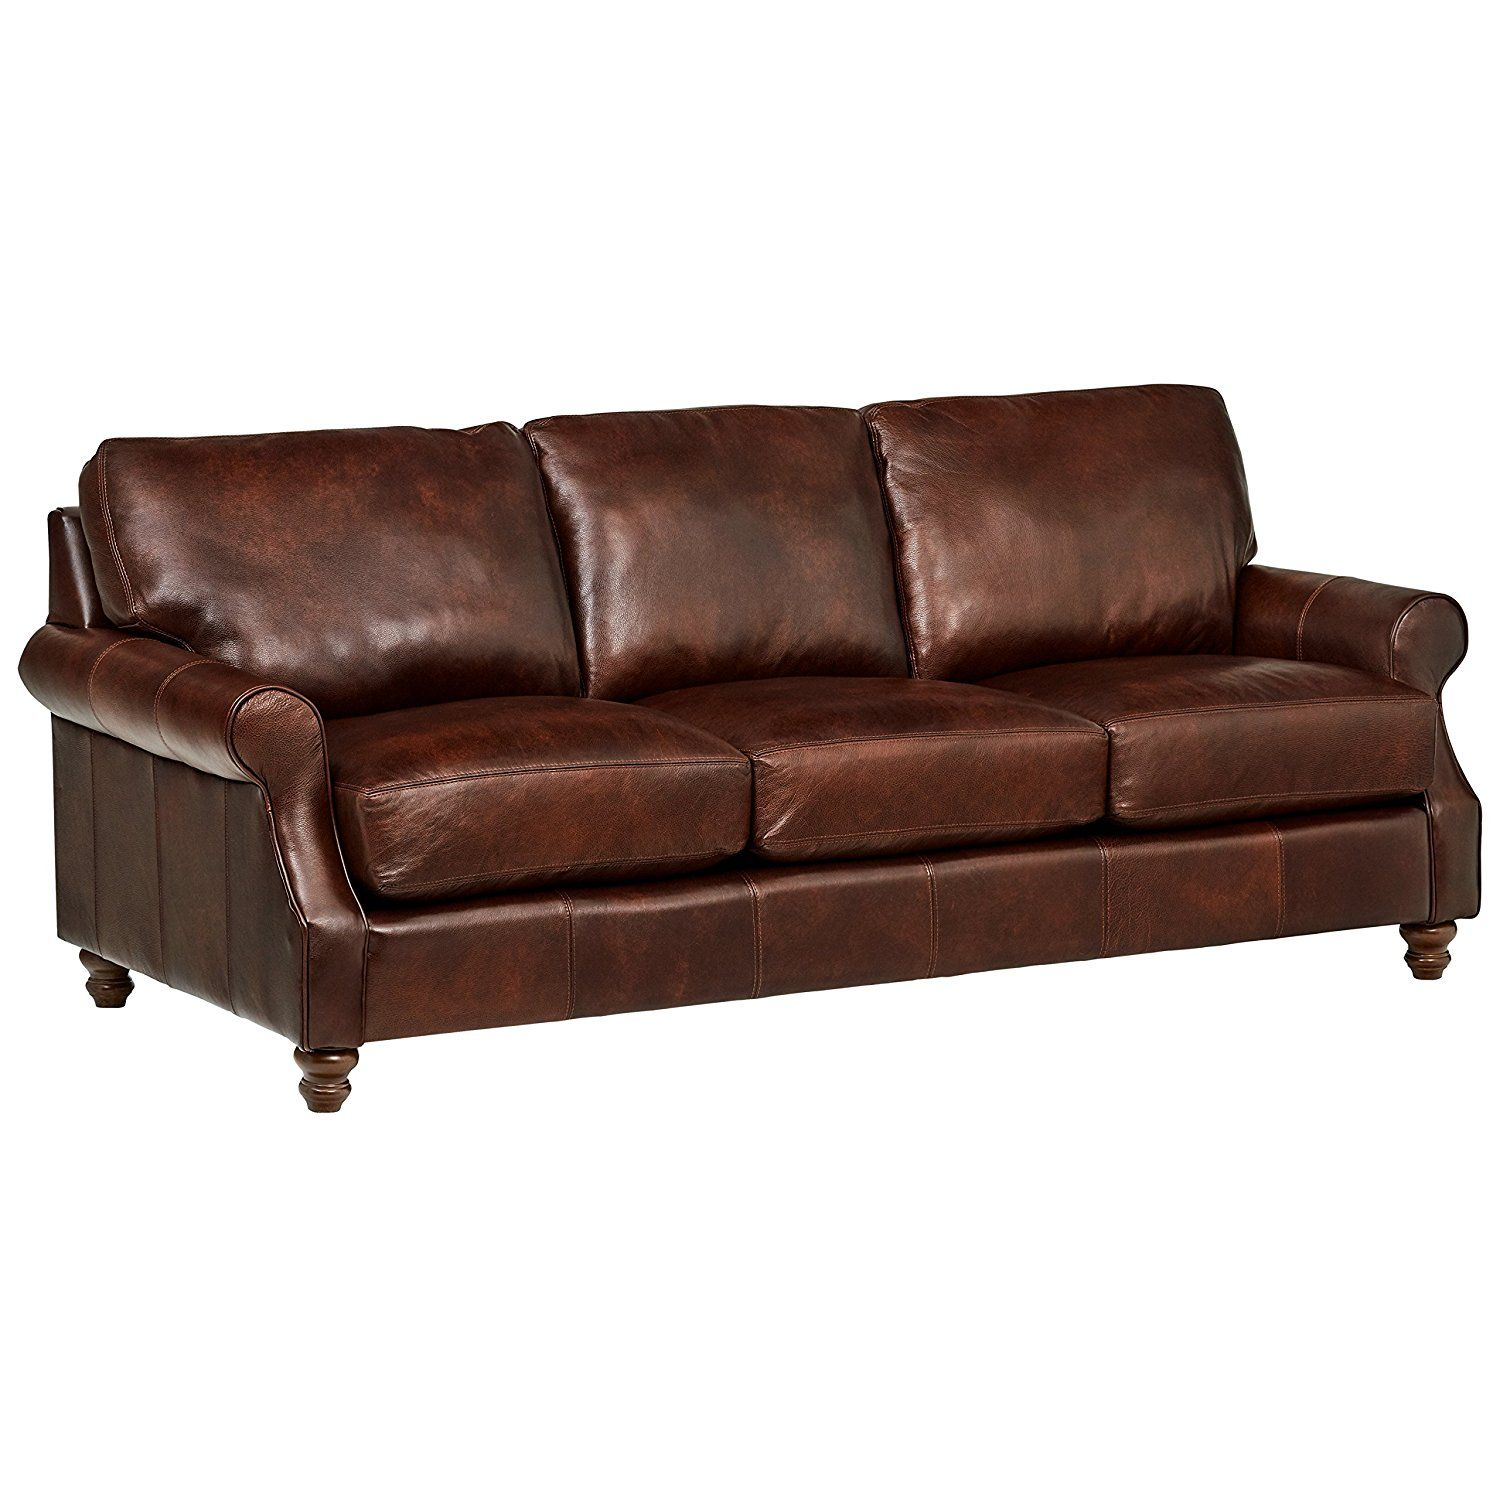 Brown Real Leather Couch Stone Beam Charles Classic Oversized Leather Sofa